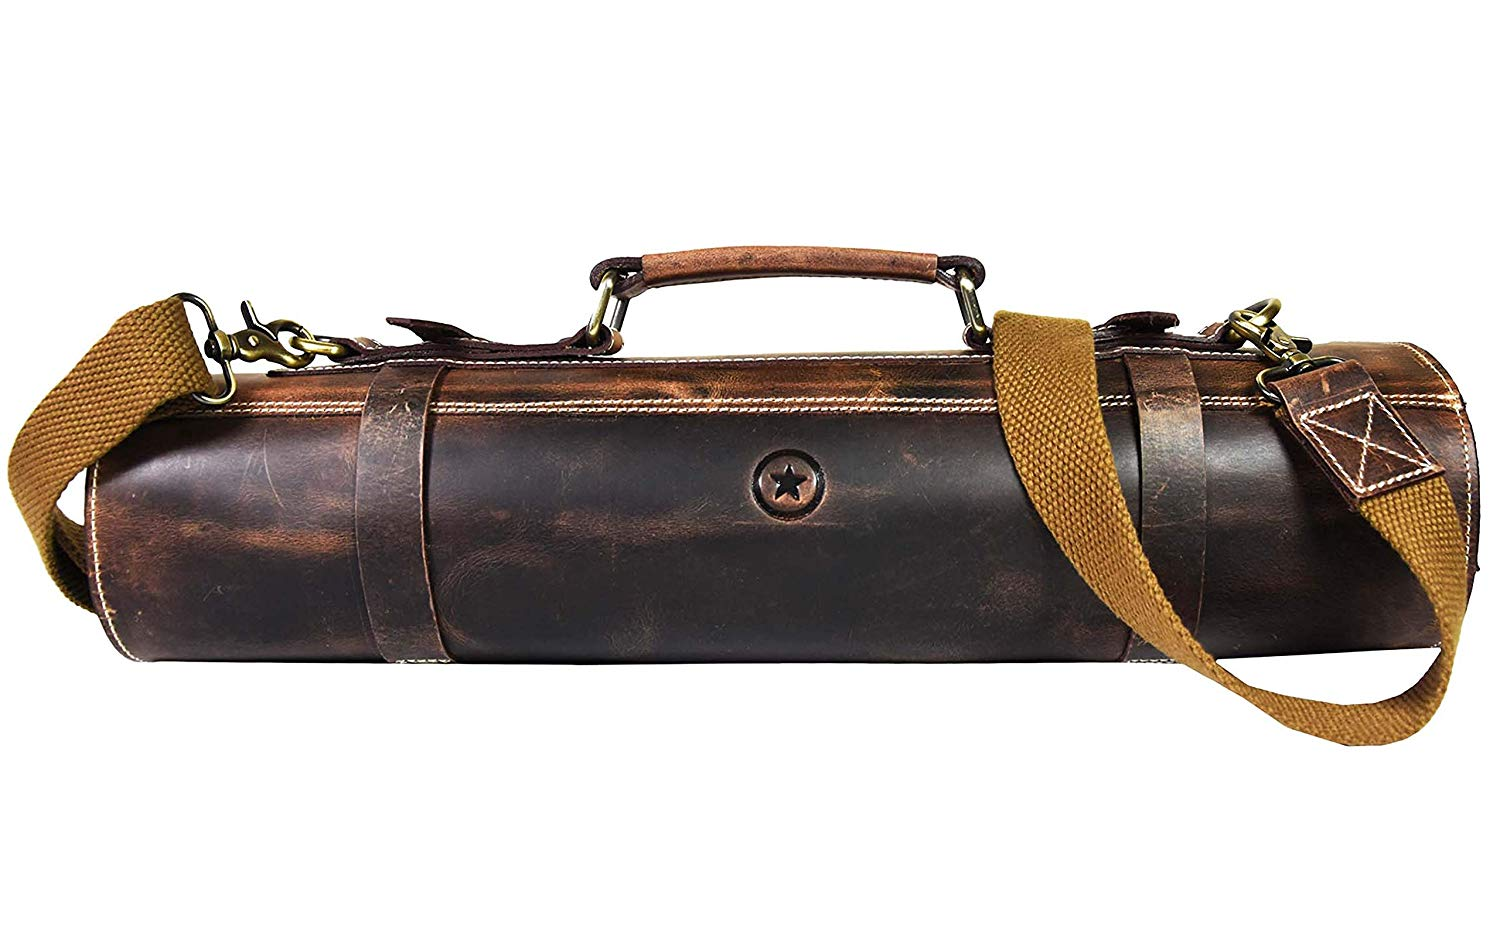 Leather Knife Bag for storage